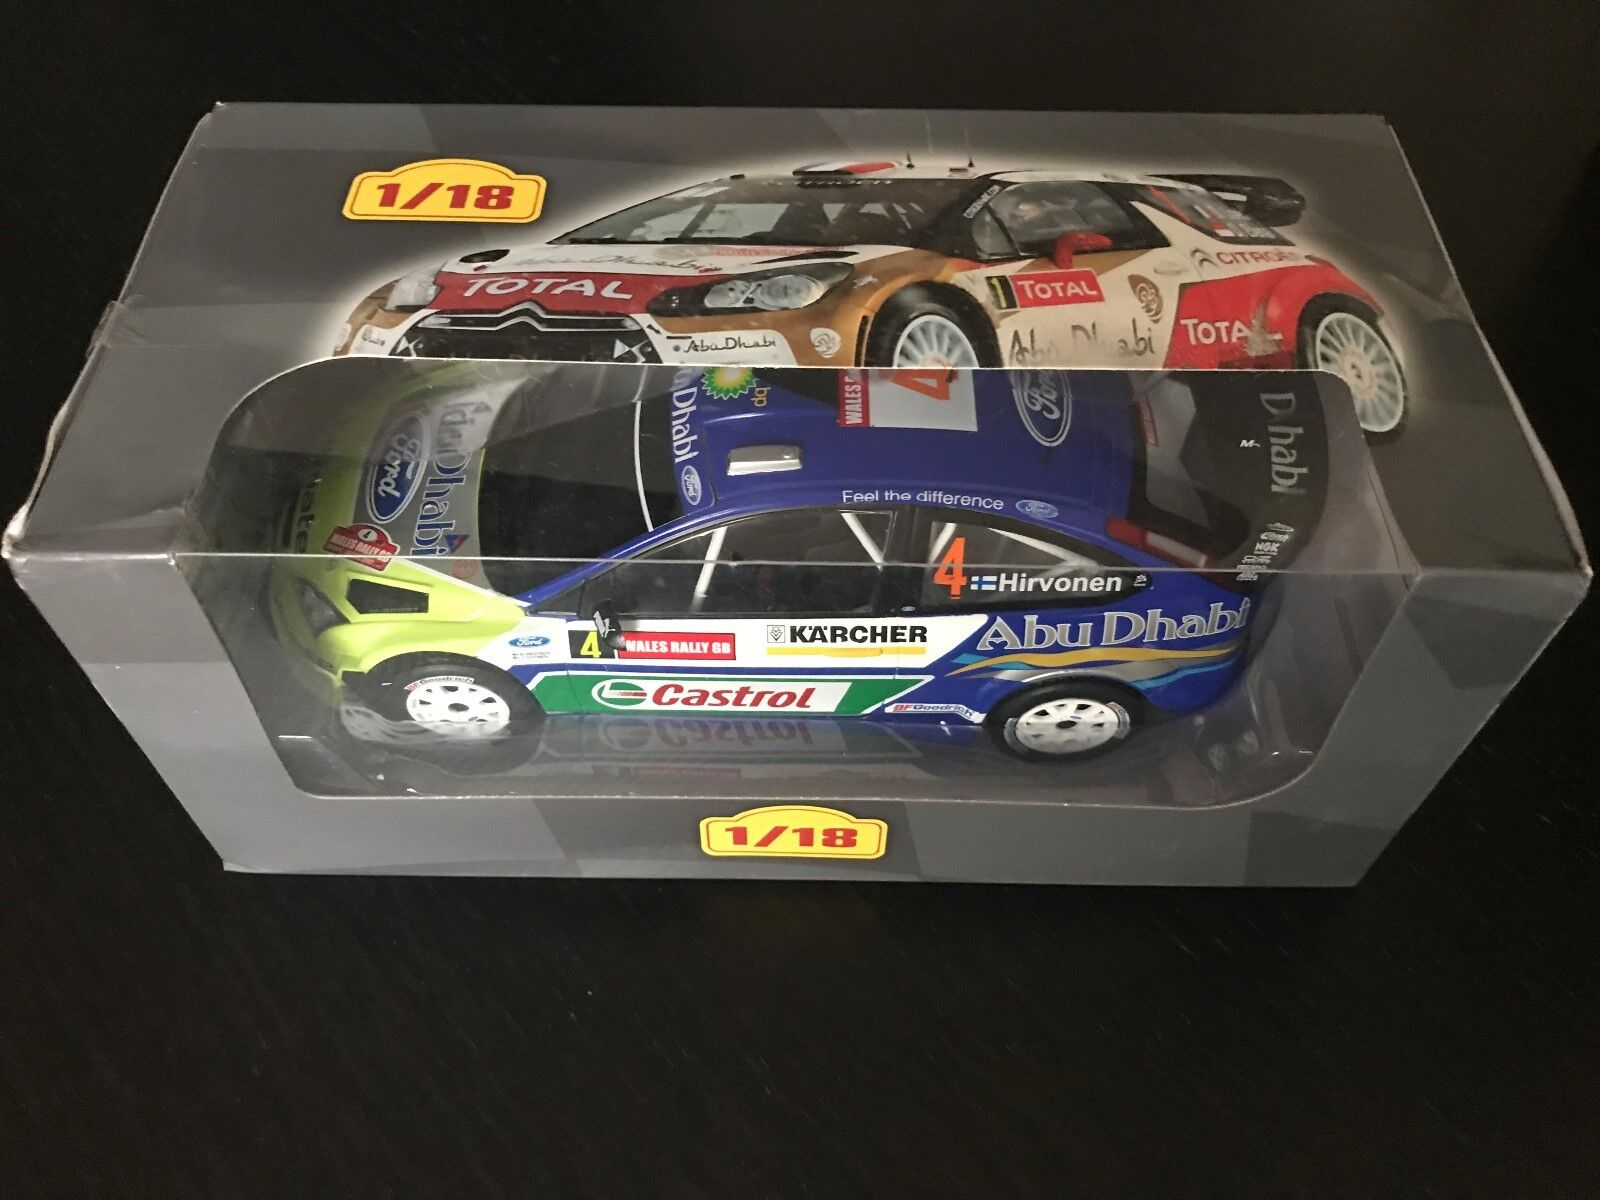 Ford focur rs wrc 2007 m. hirvonen rally rally-ixo Altaya 1 18 (eb27)